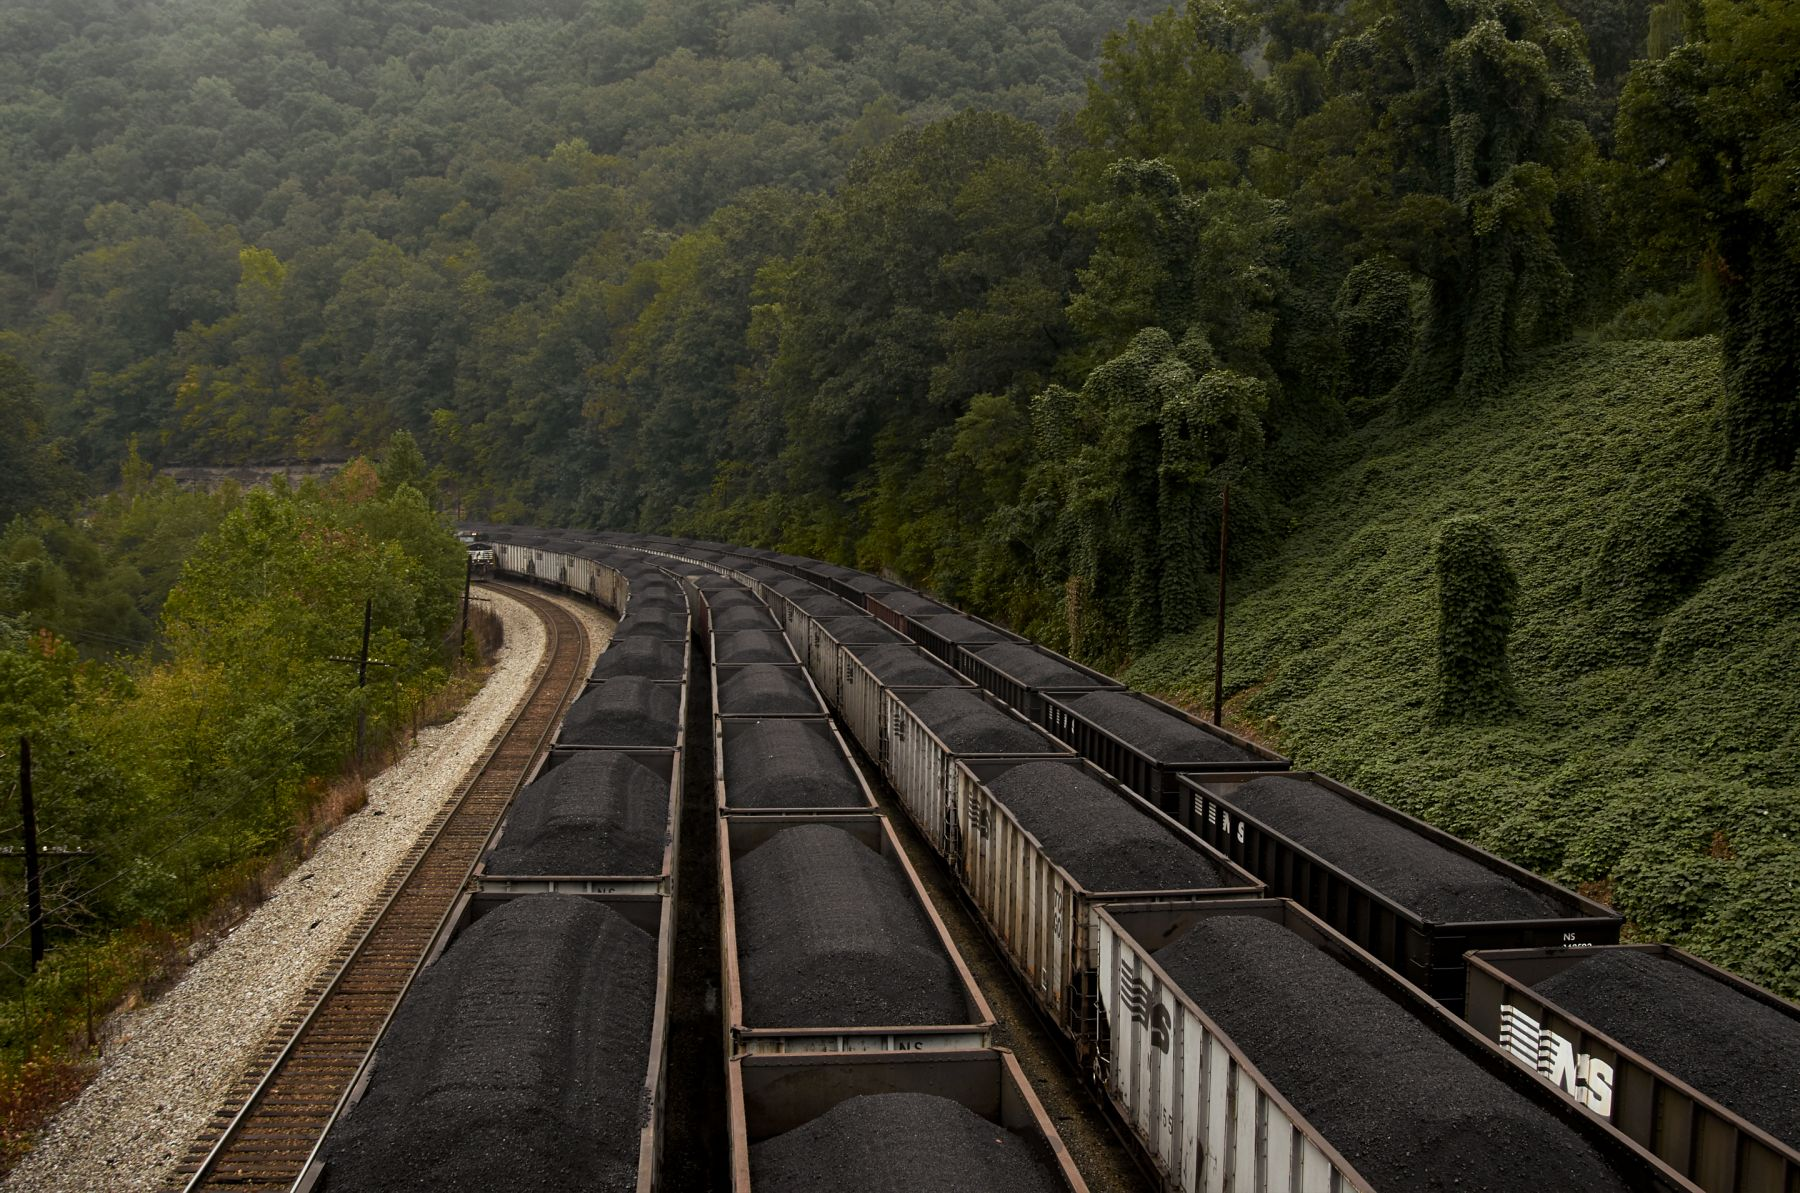 Stacy Kranitz  Wytheville, Virginia, 2012  Archival pigment print  16 x 25 inches, Edition of 7 27 x 40 inches, Edition of 3, Coal train through landscape